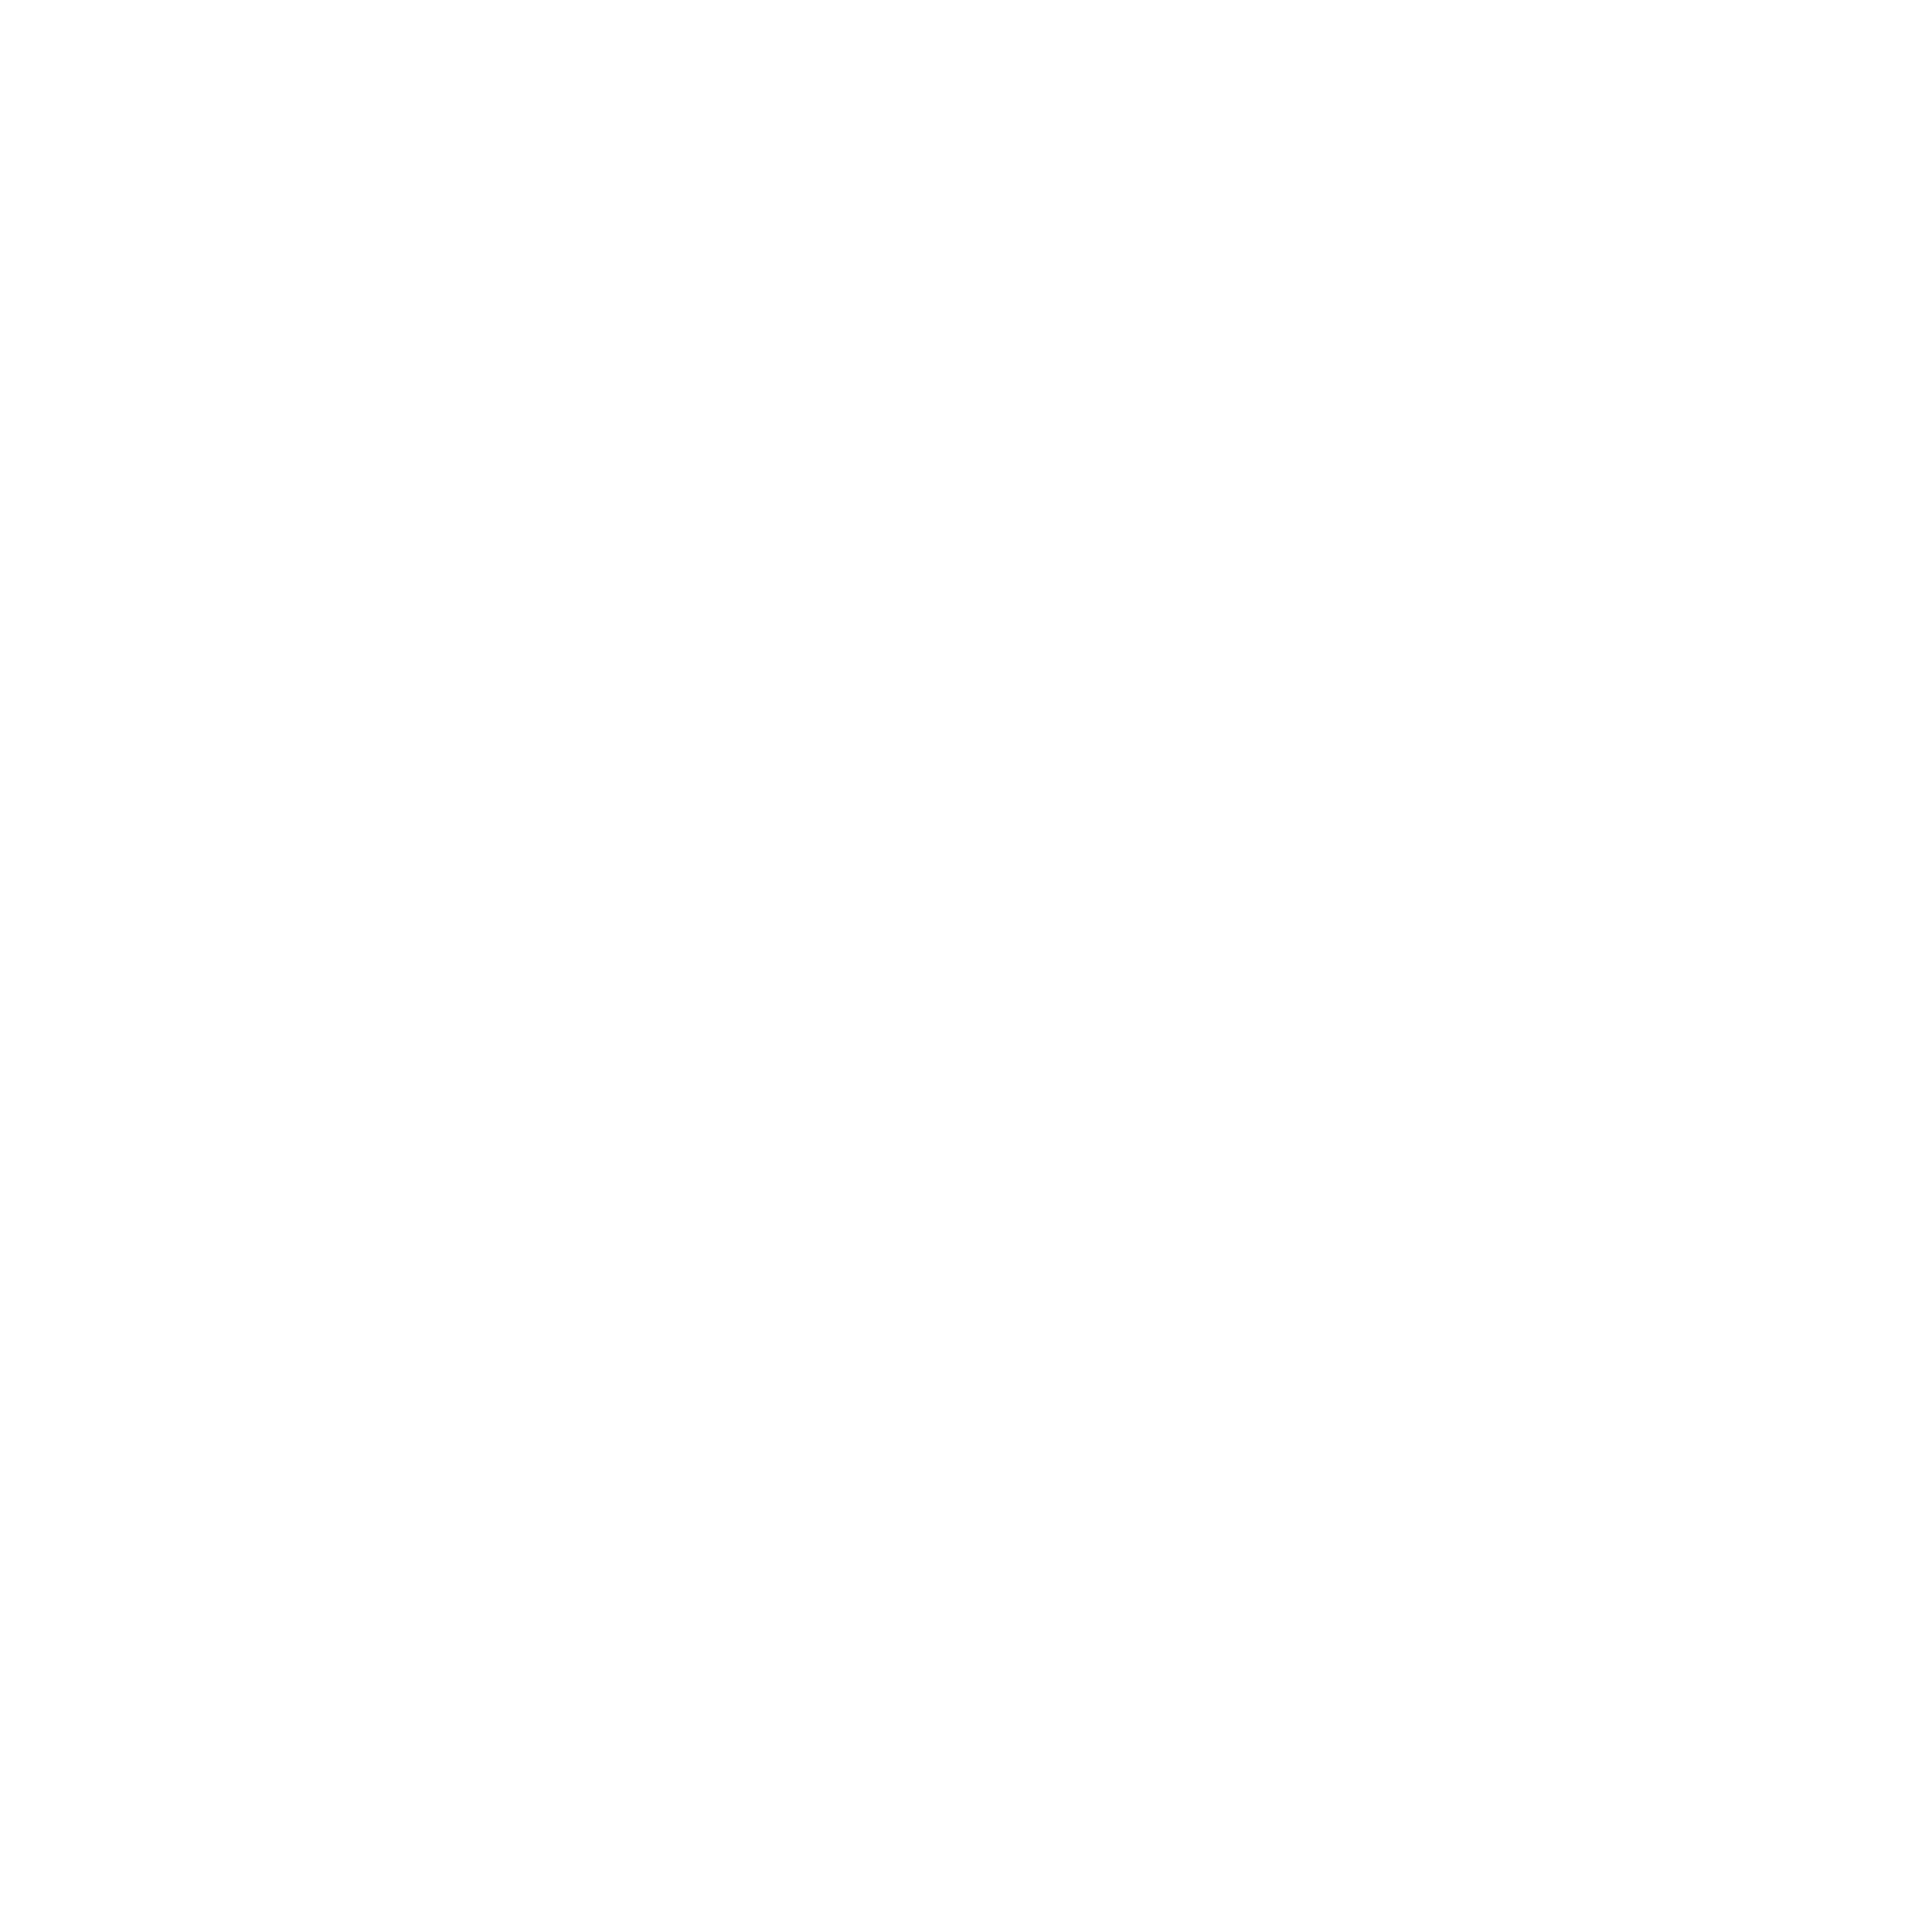 Vice President Aaron Burr vs. former Secretary of the Treasury Alexander Hamilton in 1804: the political duel that shook the nation - Photo: Imago